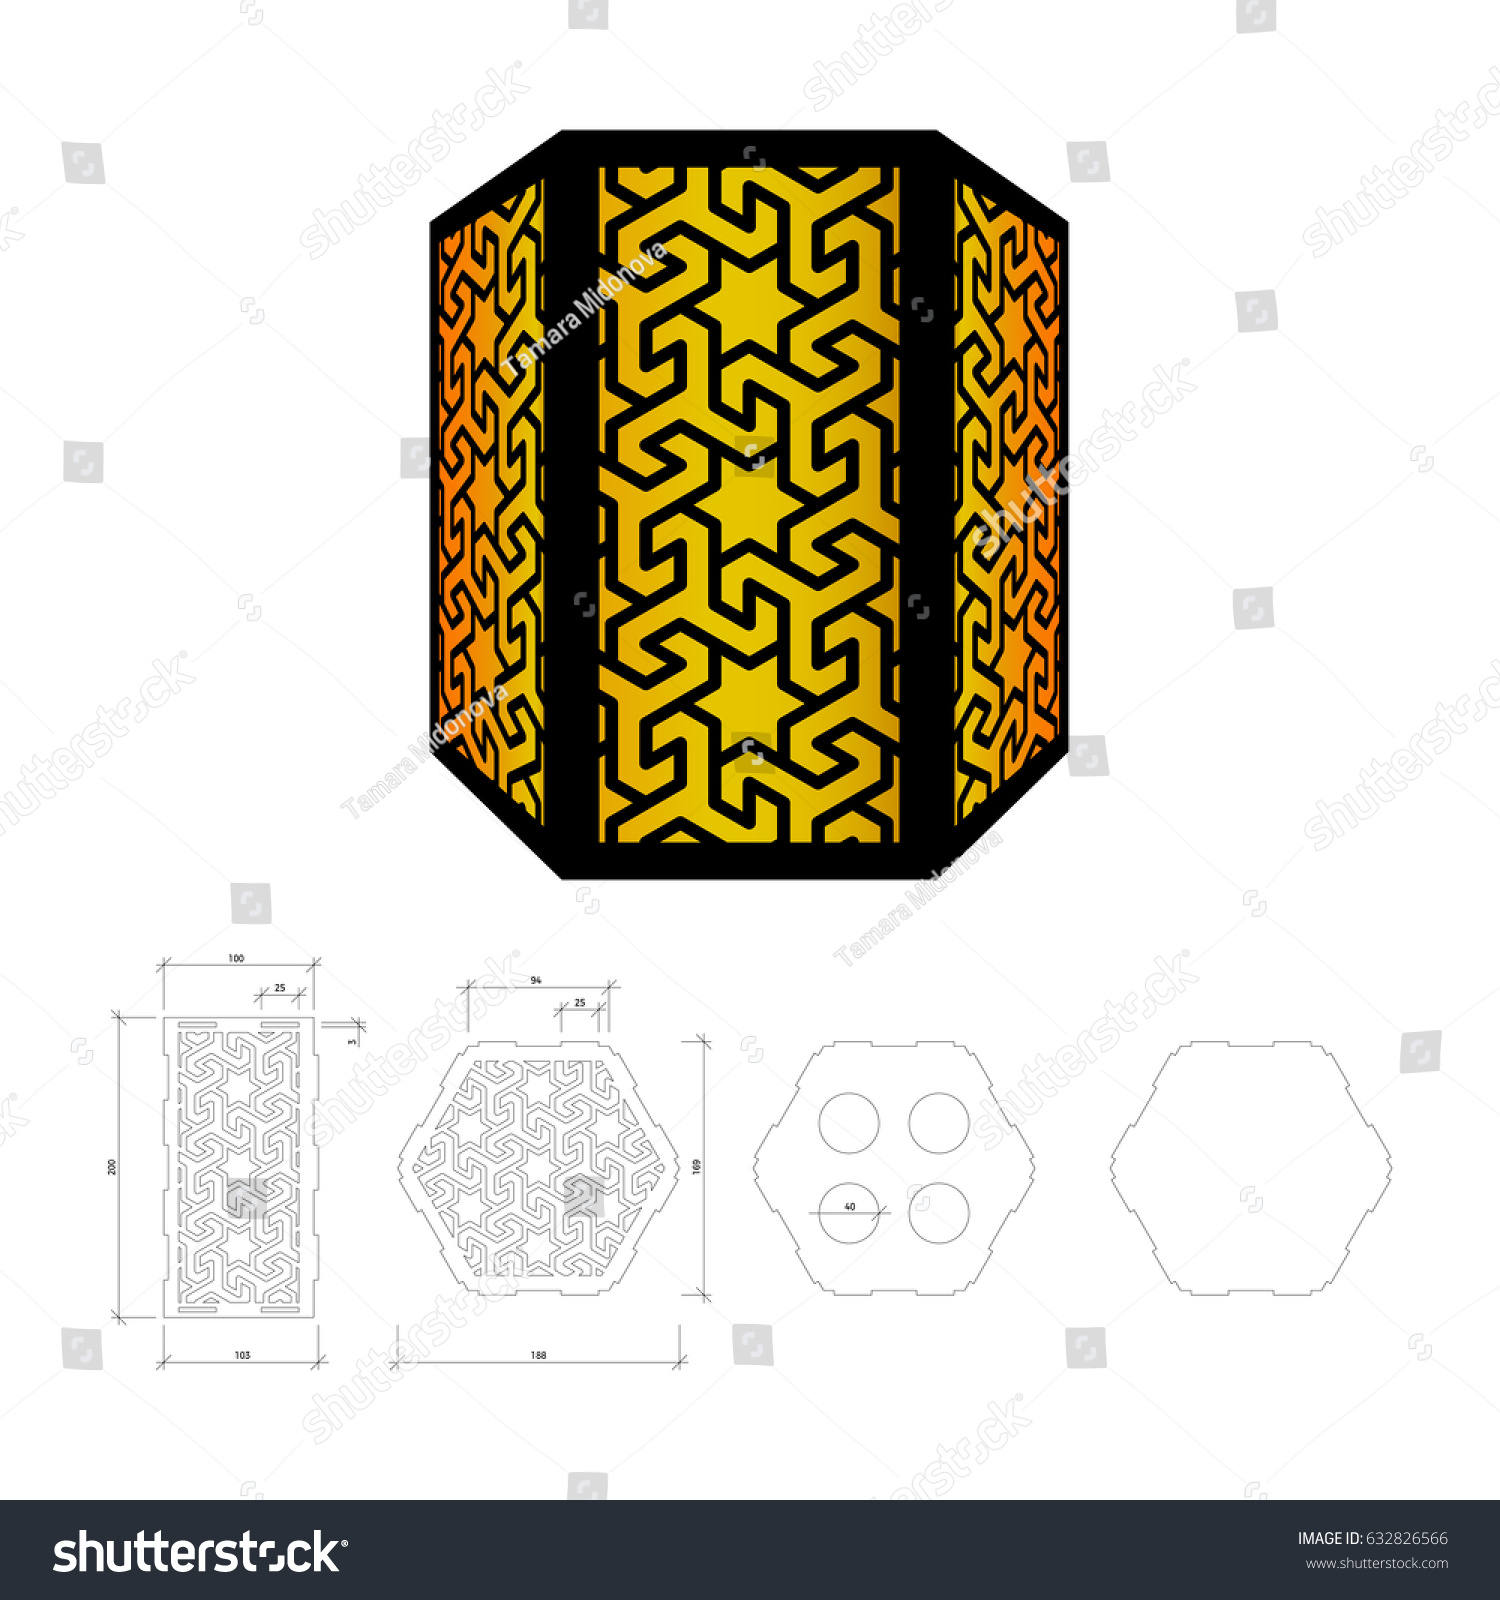 Cut out template lamp candle holder stock vector 632826566 cut out template for lamp candle holder lantern or chandelier plywood 3 mm arubaitofo Image collections